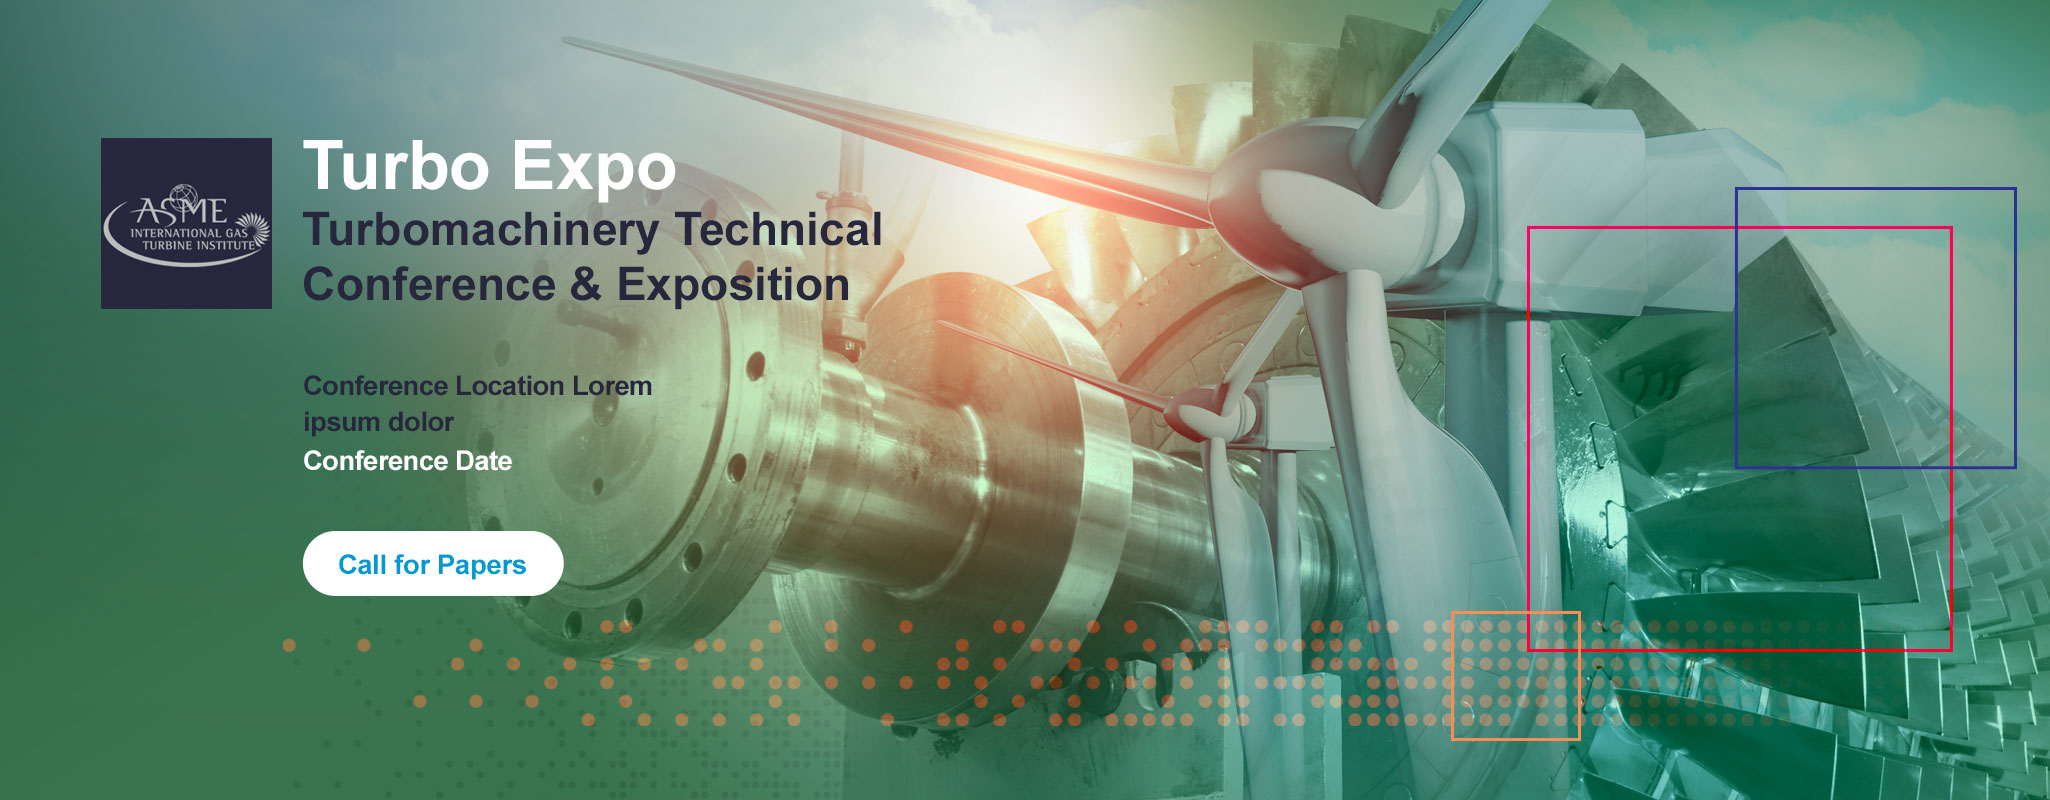 TurboExpo 2020 Conference landing page header